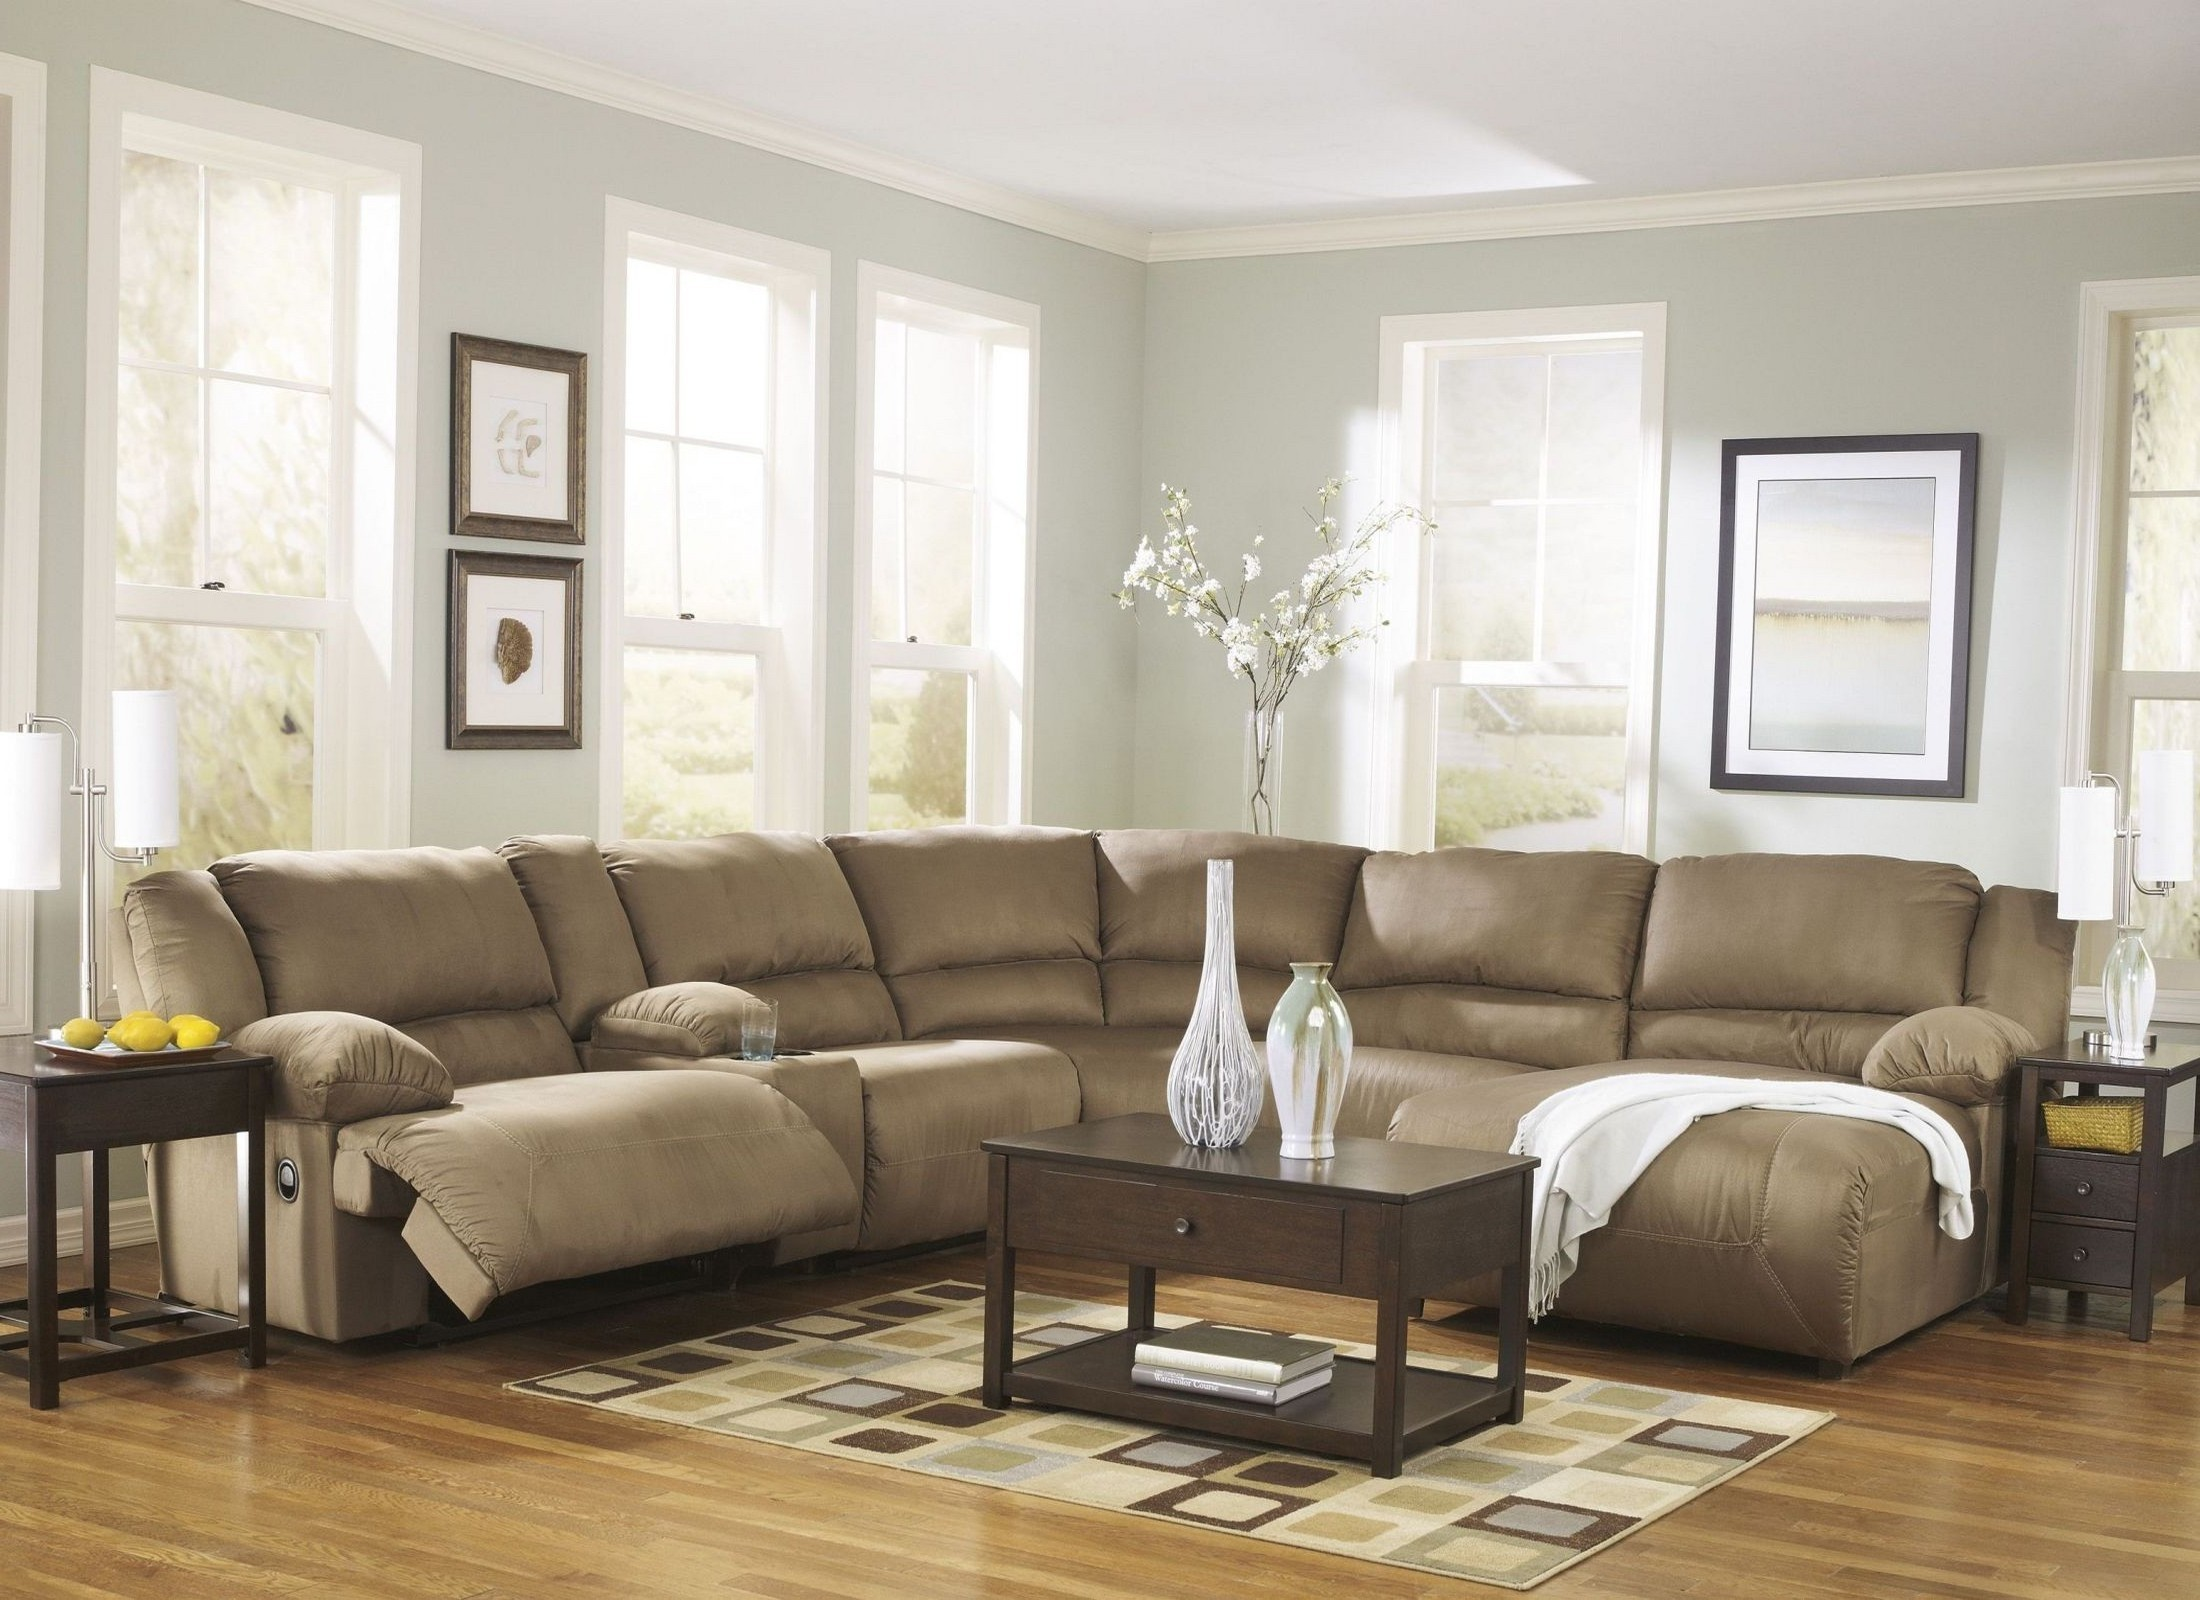 Hogan mocha right chaise reclining sectional from ashley for Ashley hogan chaise